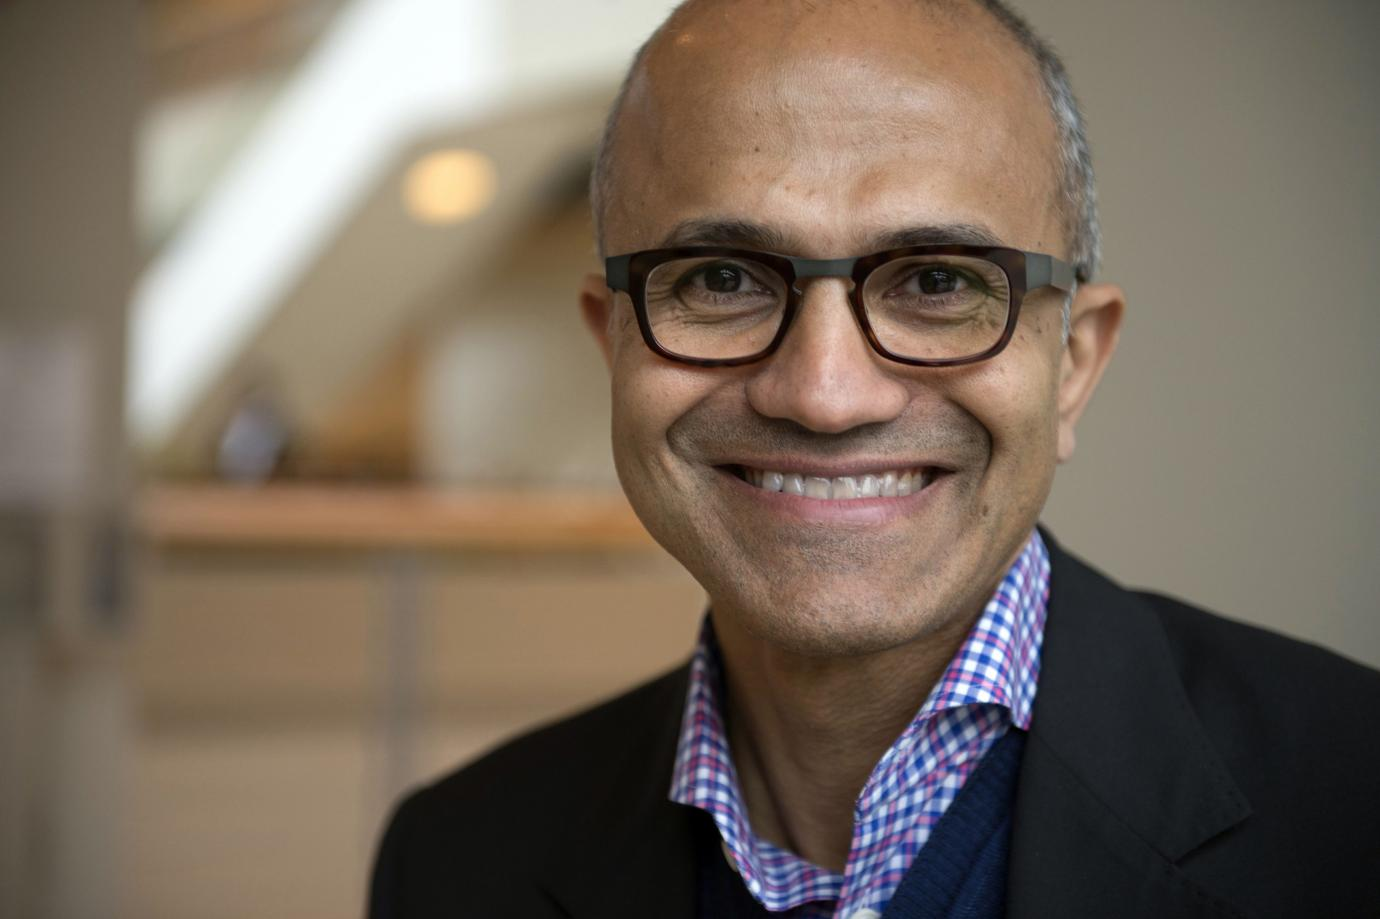 No longer dependent on Office, Microsoft's biggest source of revenue will be the cloud - VnReview